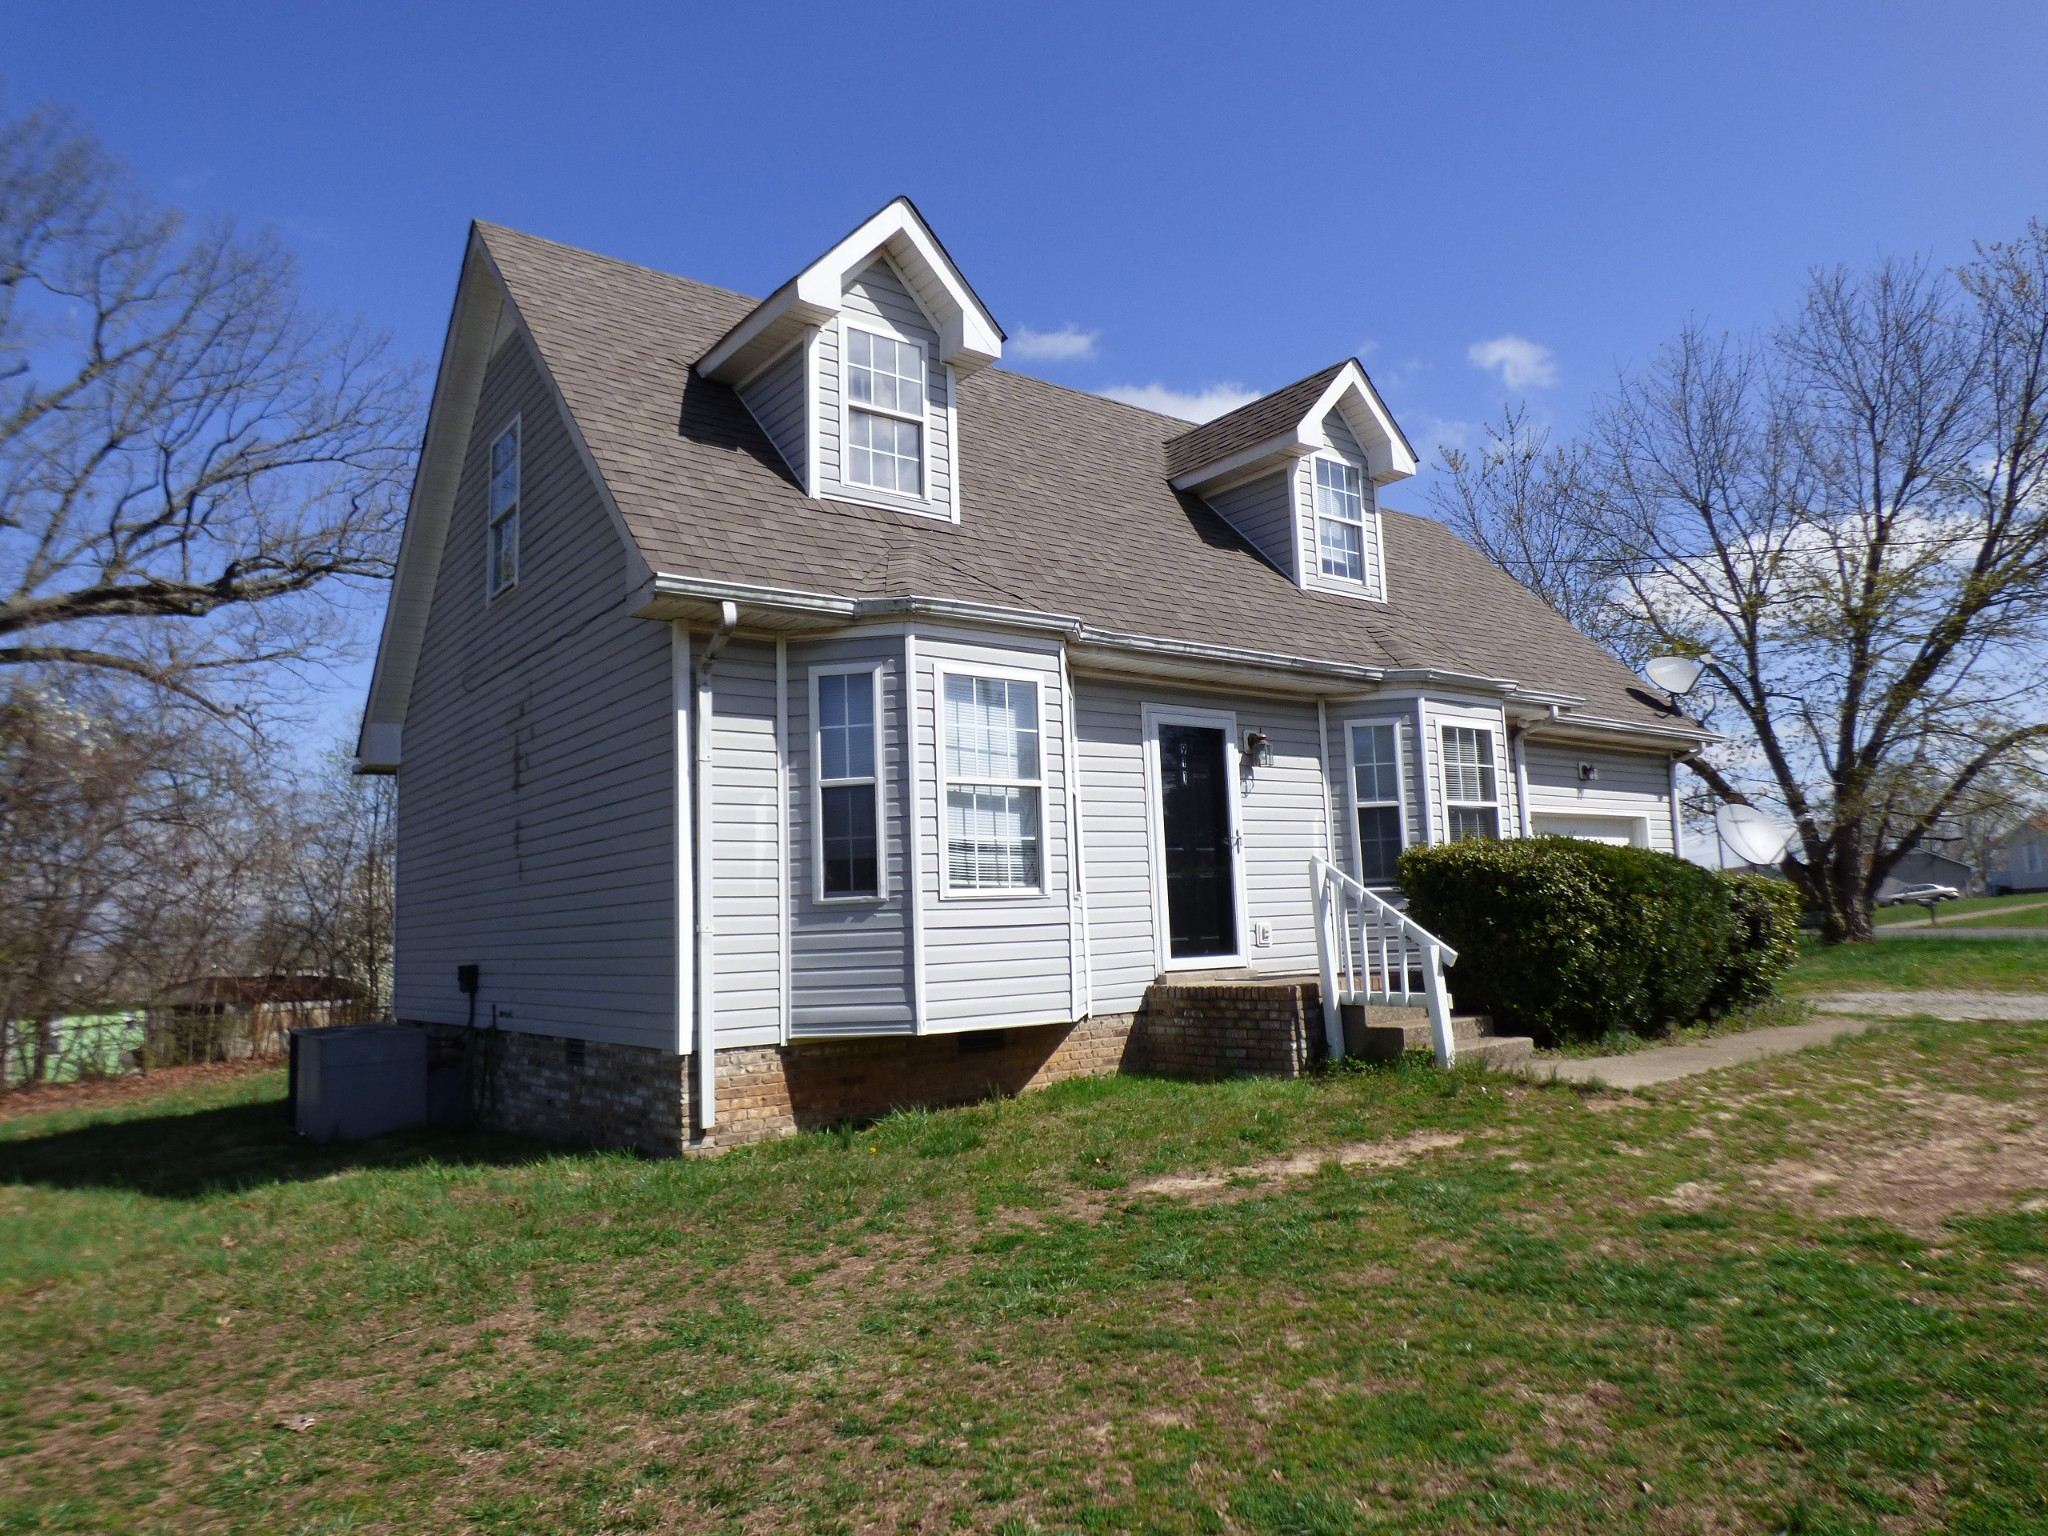 911 Van Buren Ave Property Photo - Oak Grove, KY real estate listing